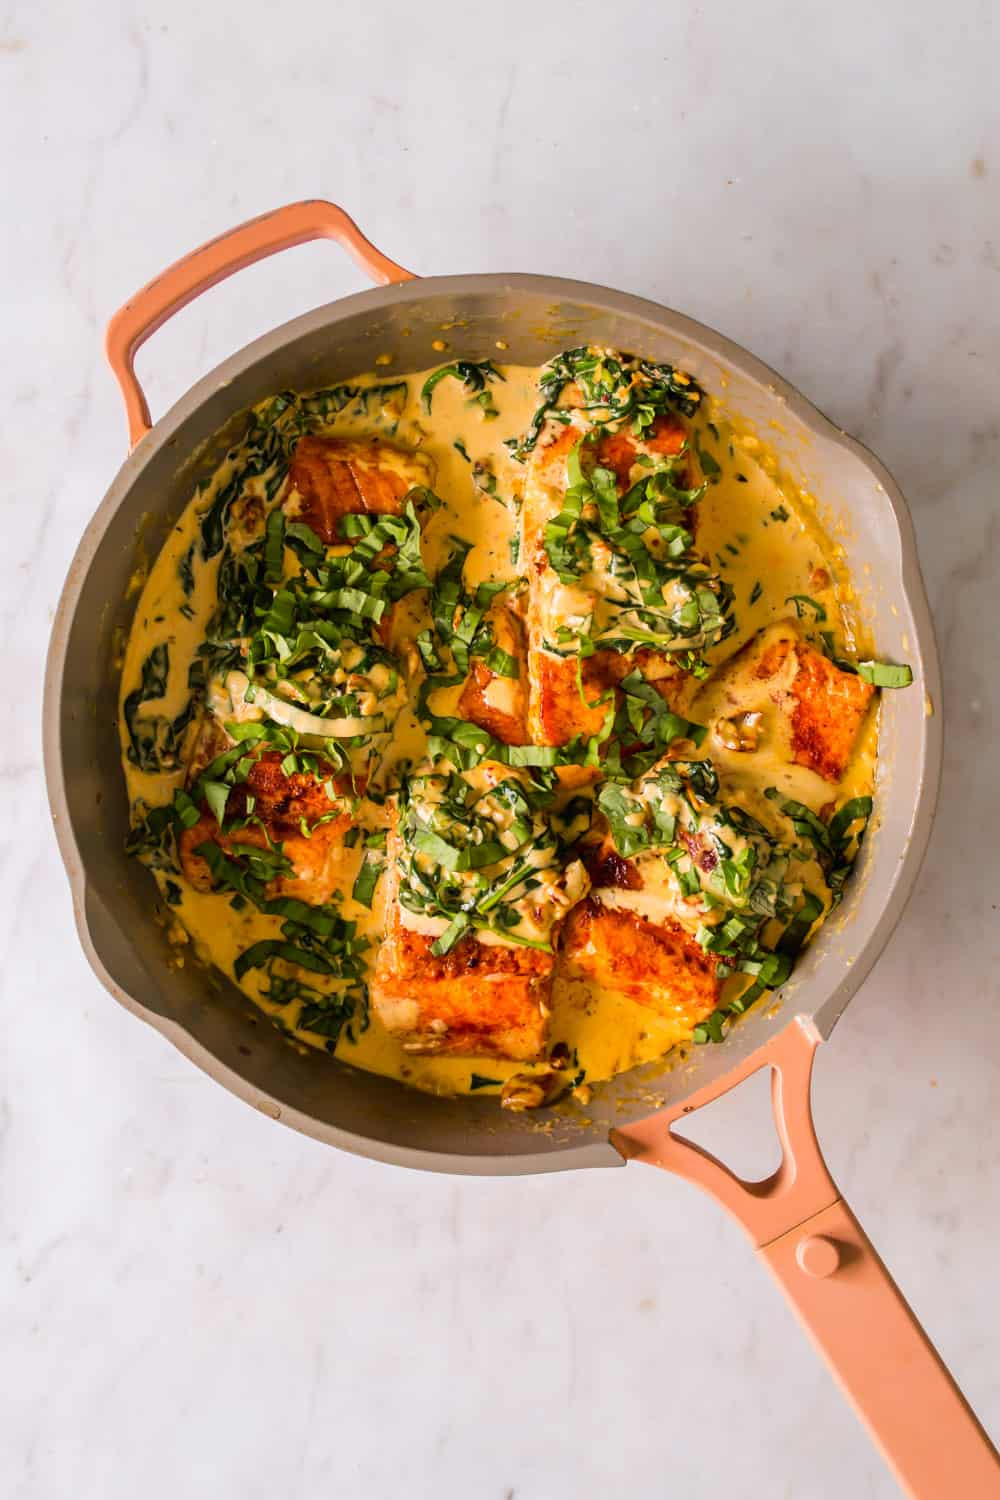 Cooked salmon and cream sauce topped with spinach in a large pan